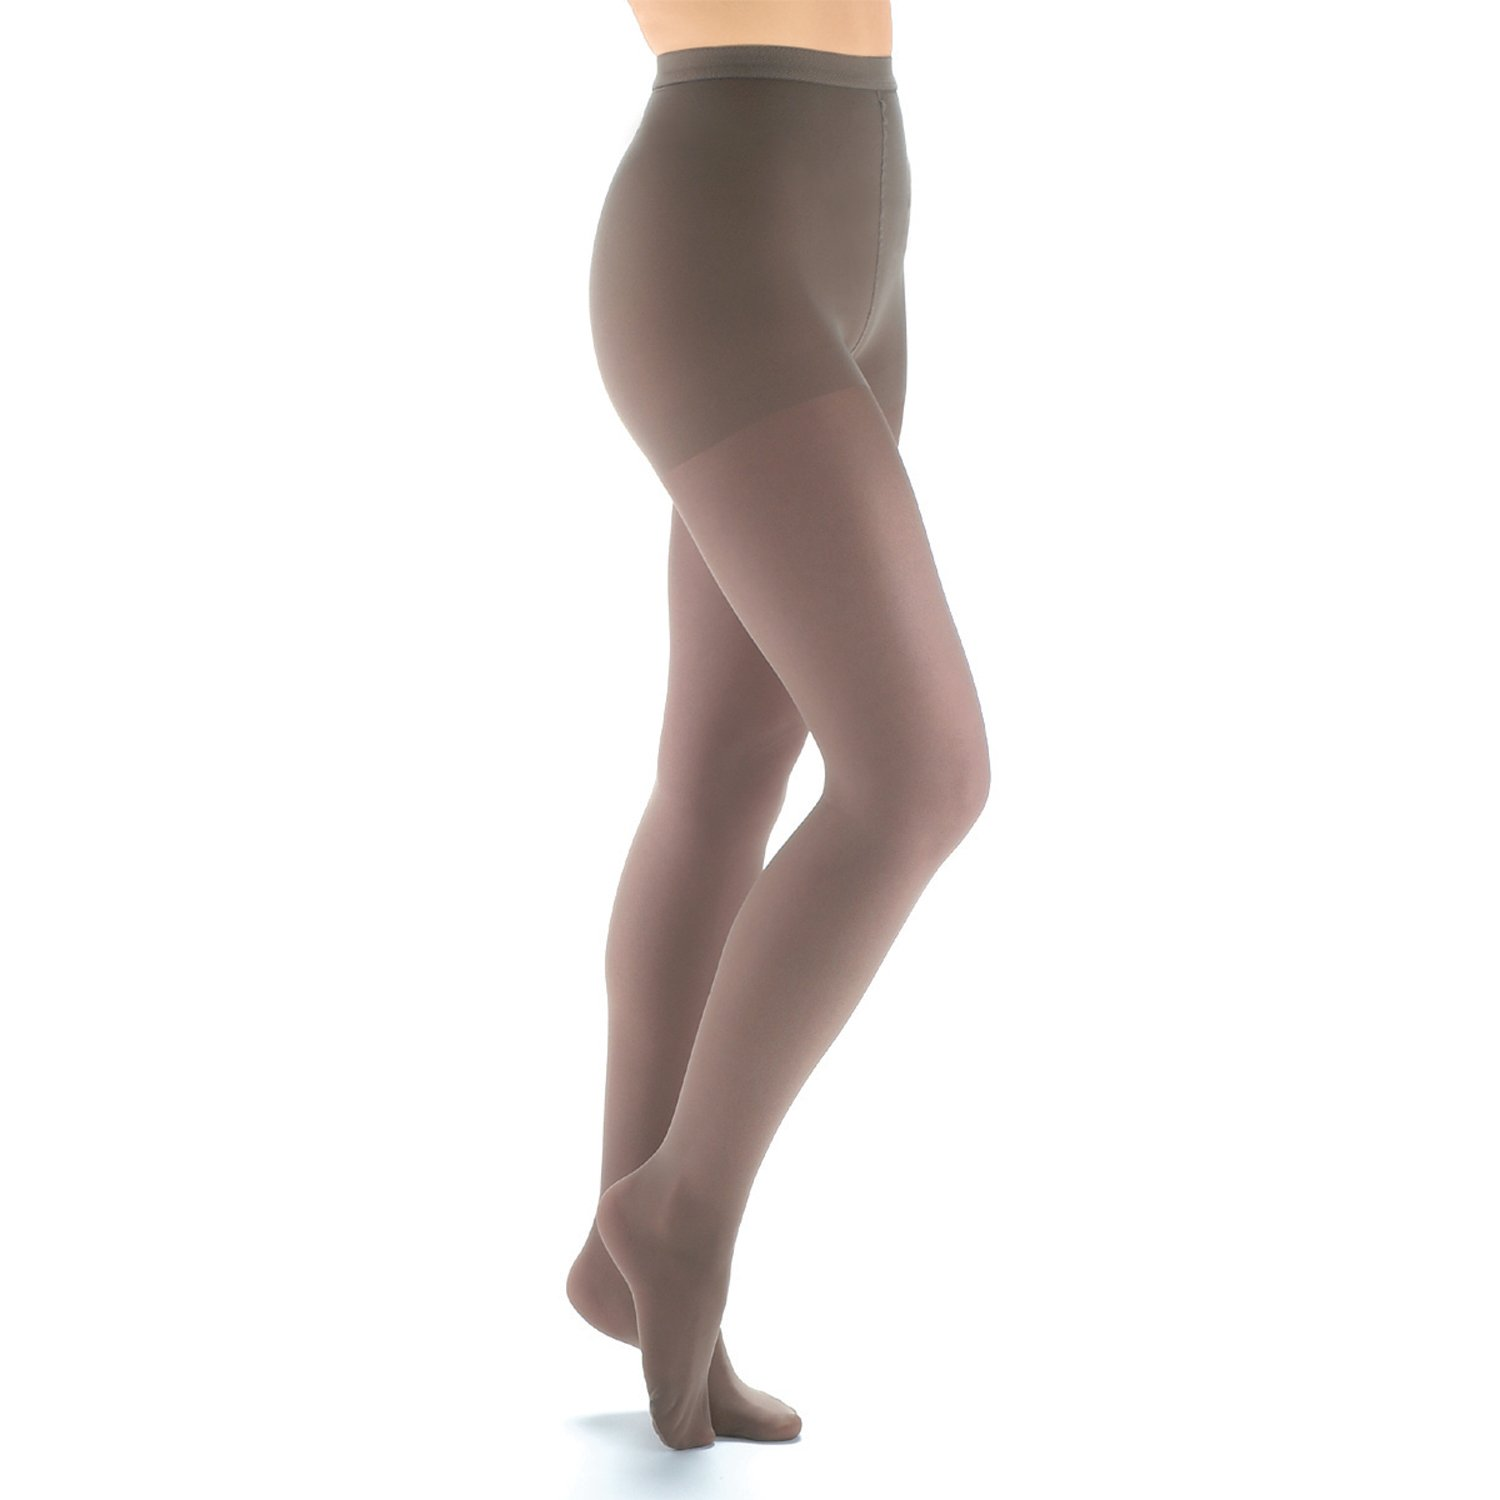 Women's Moderate Compression Pantyhose - Support Plus - Beige - Queen Plus